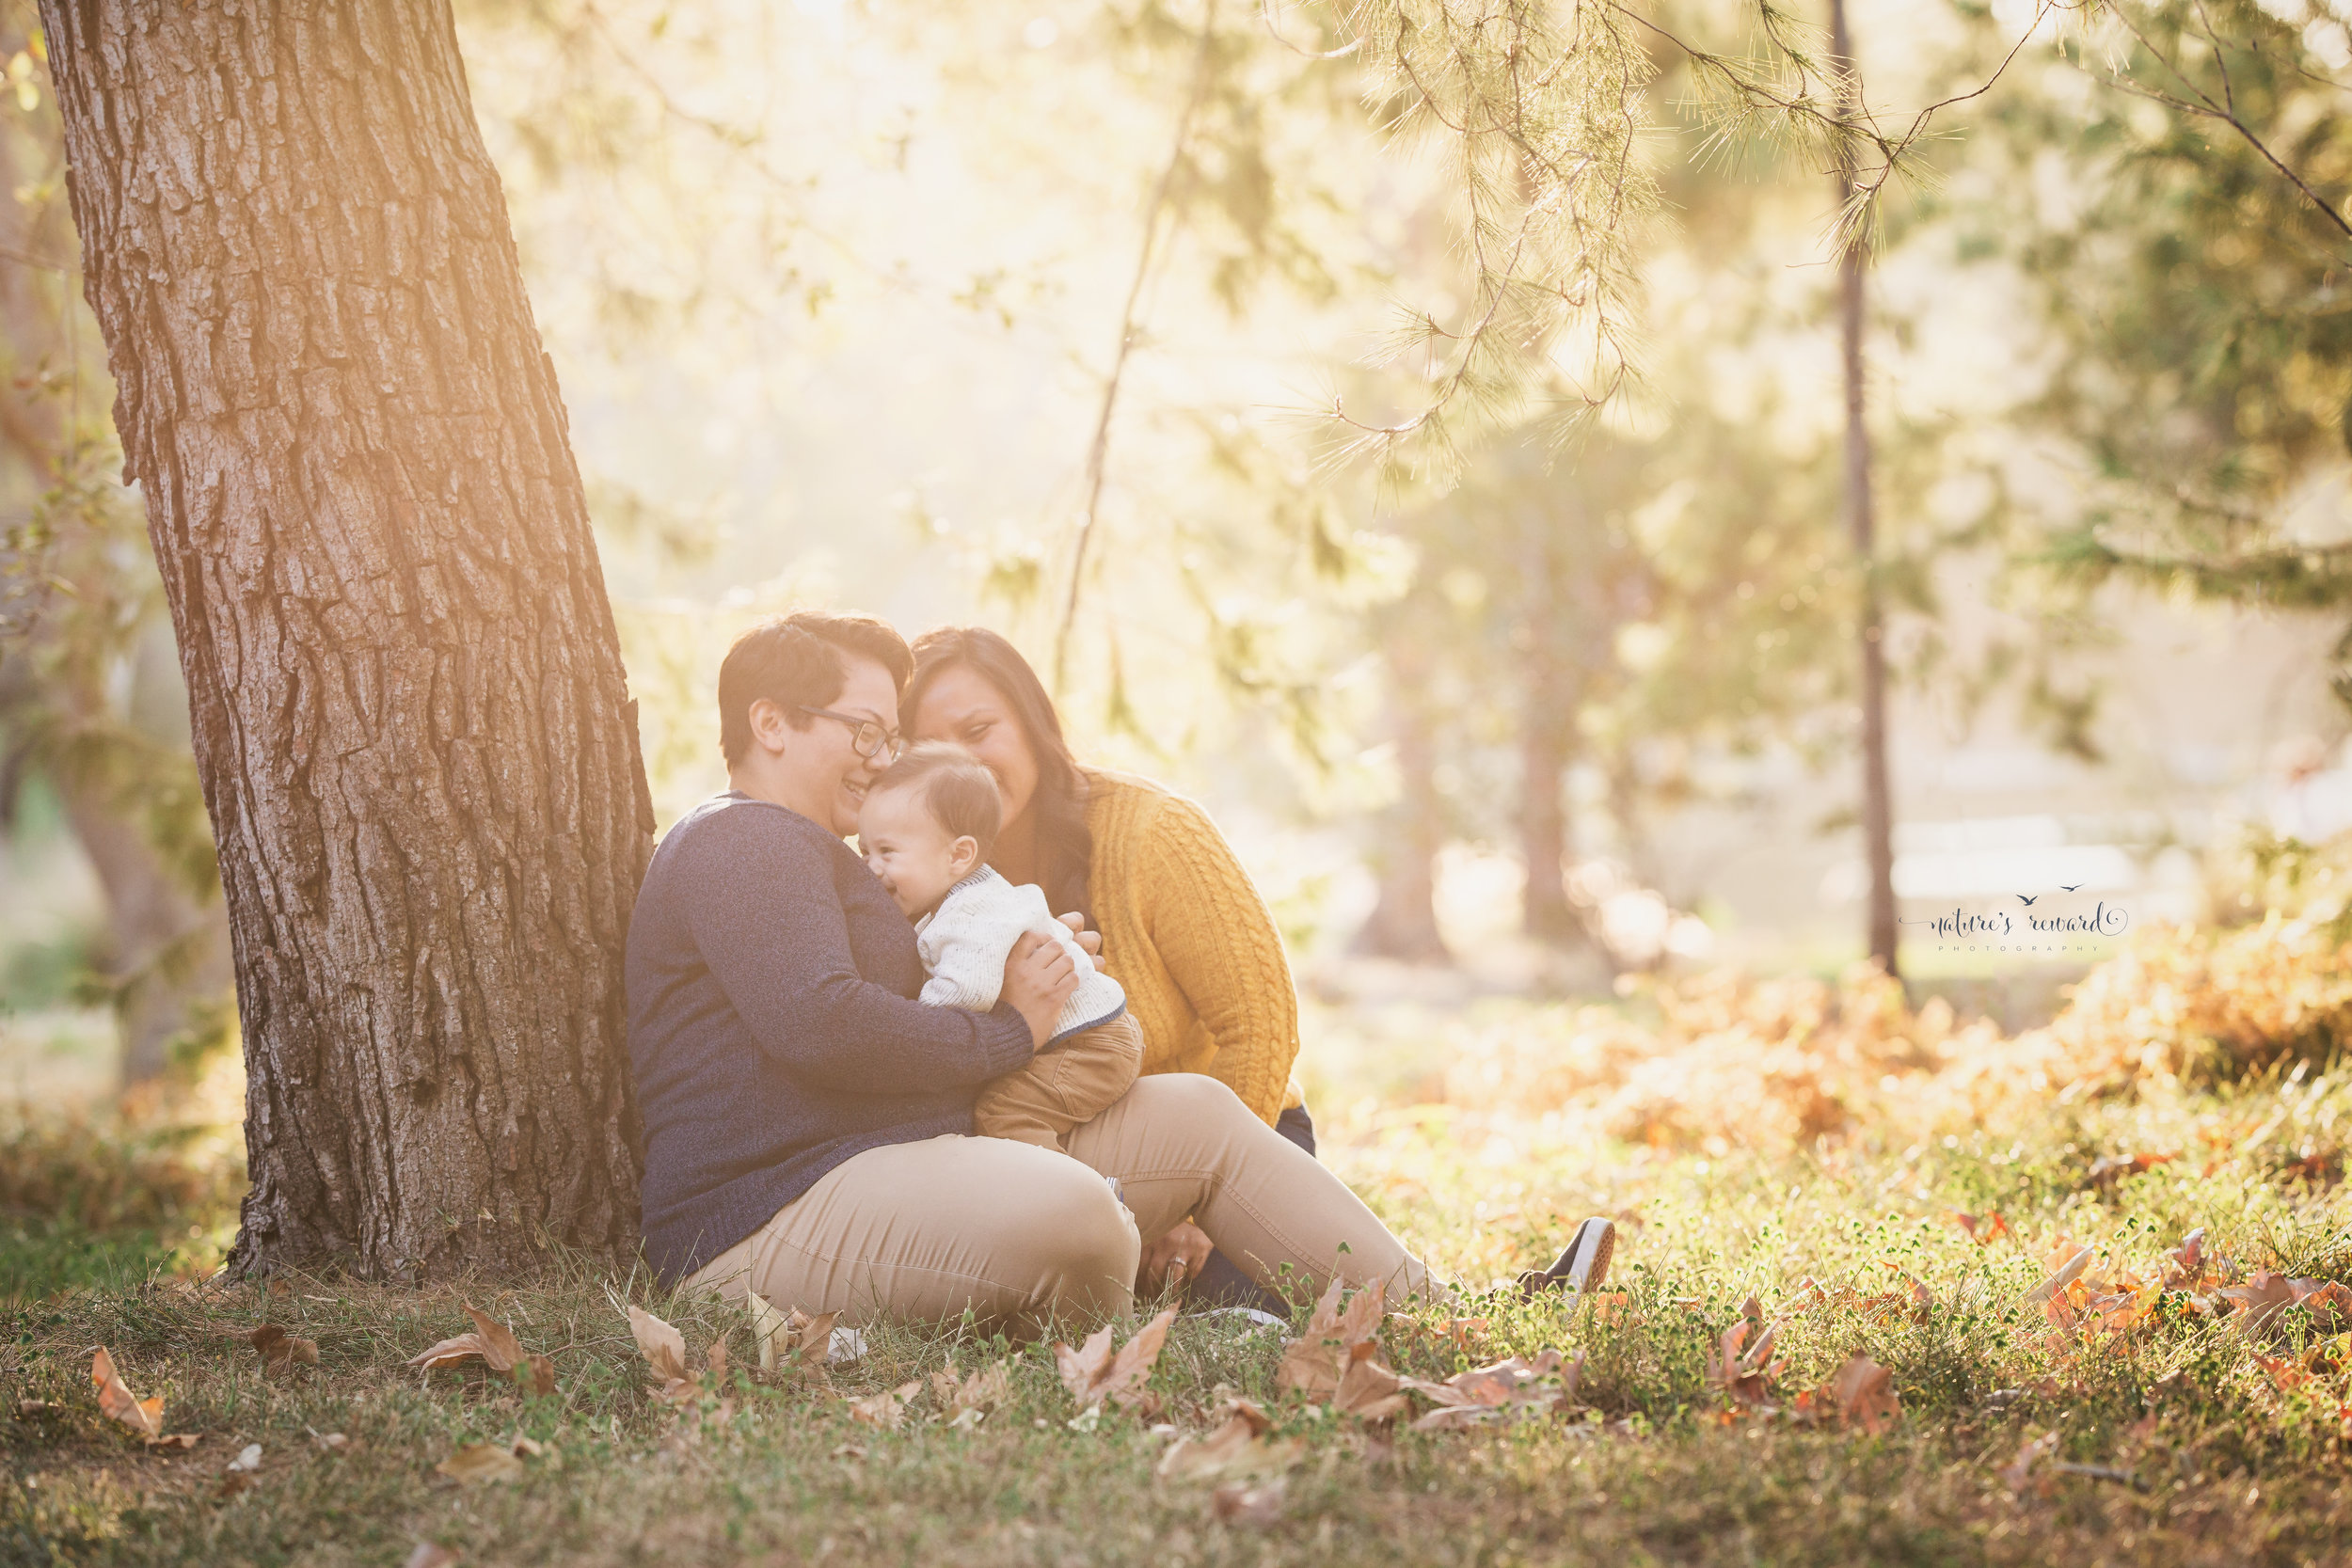 Stunningly gorgeous family portrait in golden sunset light sitting bay a Tree and enjoy gin their baby boy- a family portrait by Nature's Reward Photography